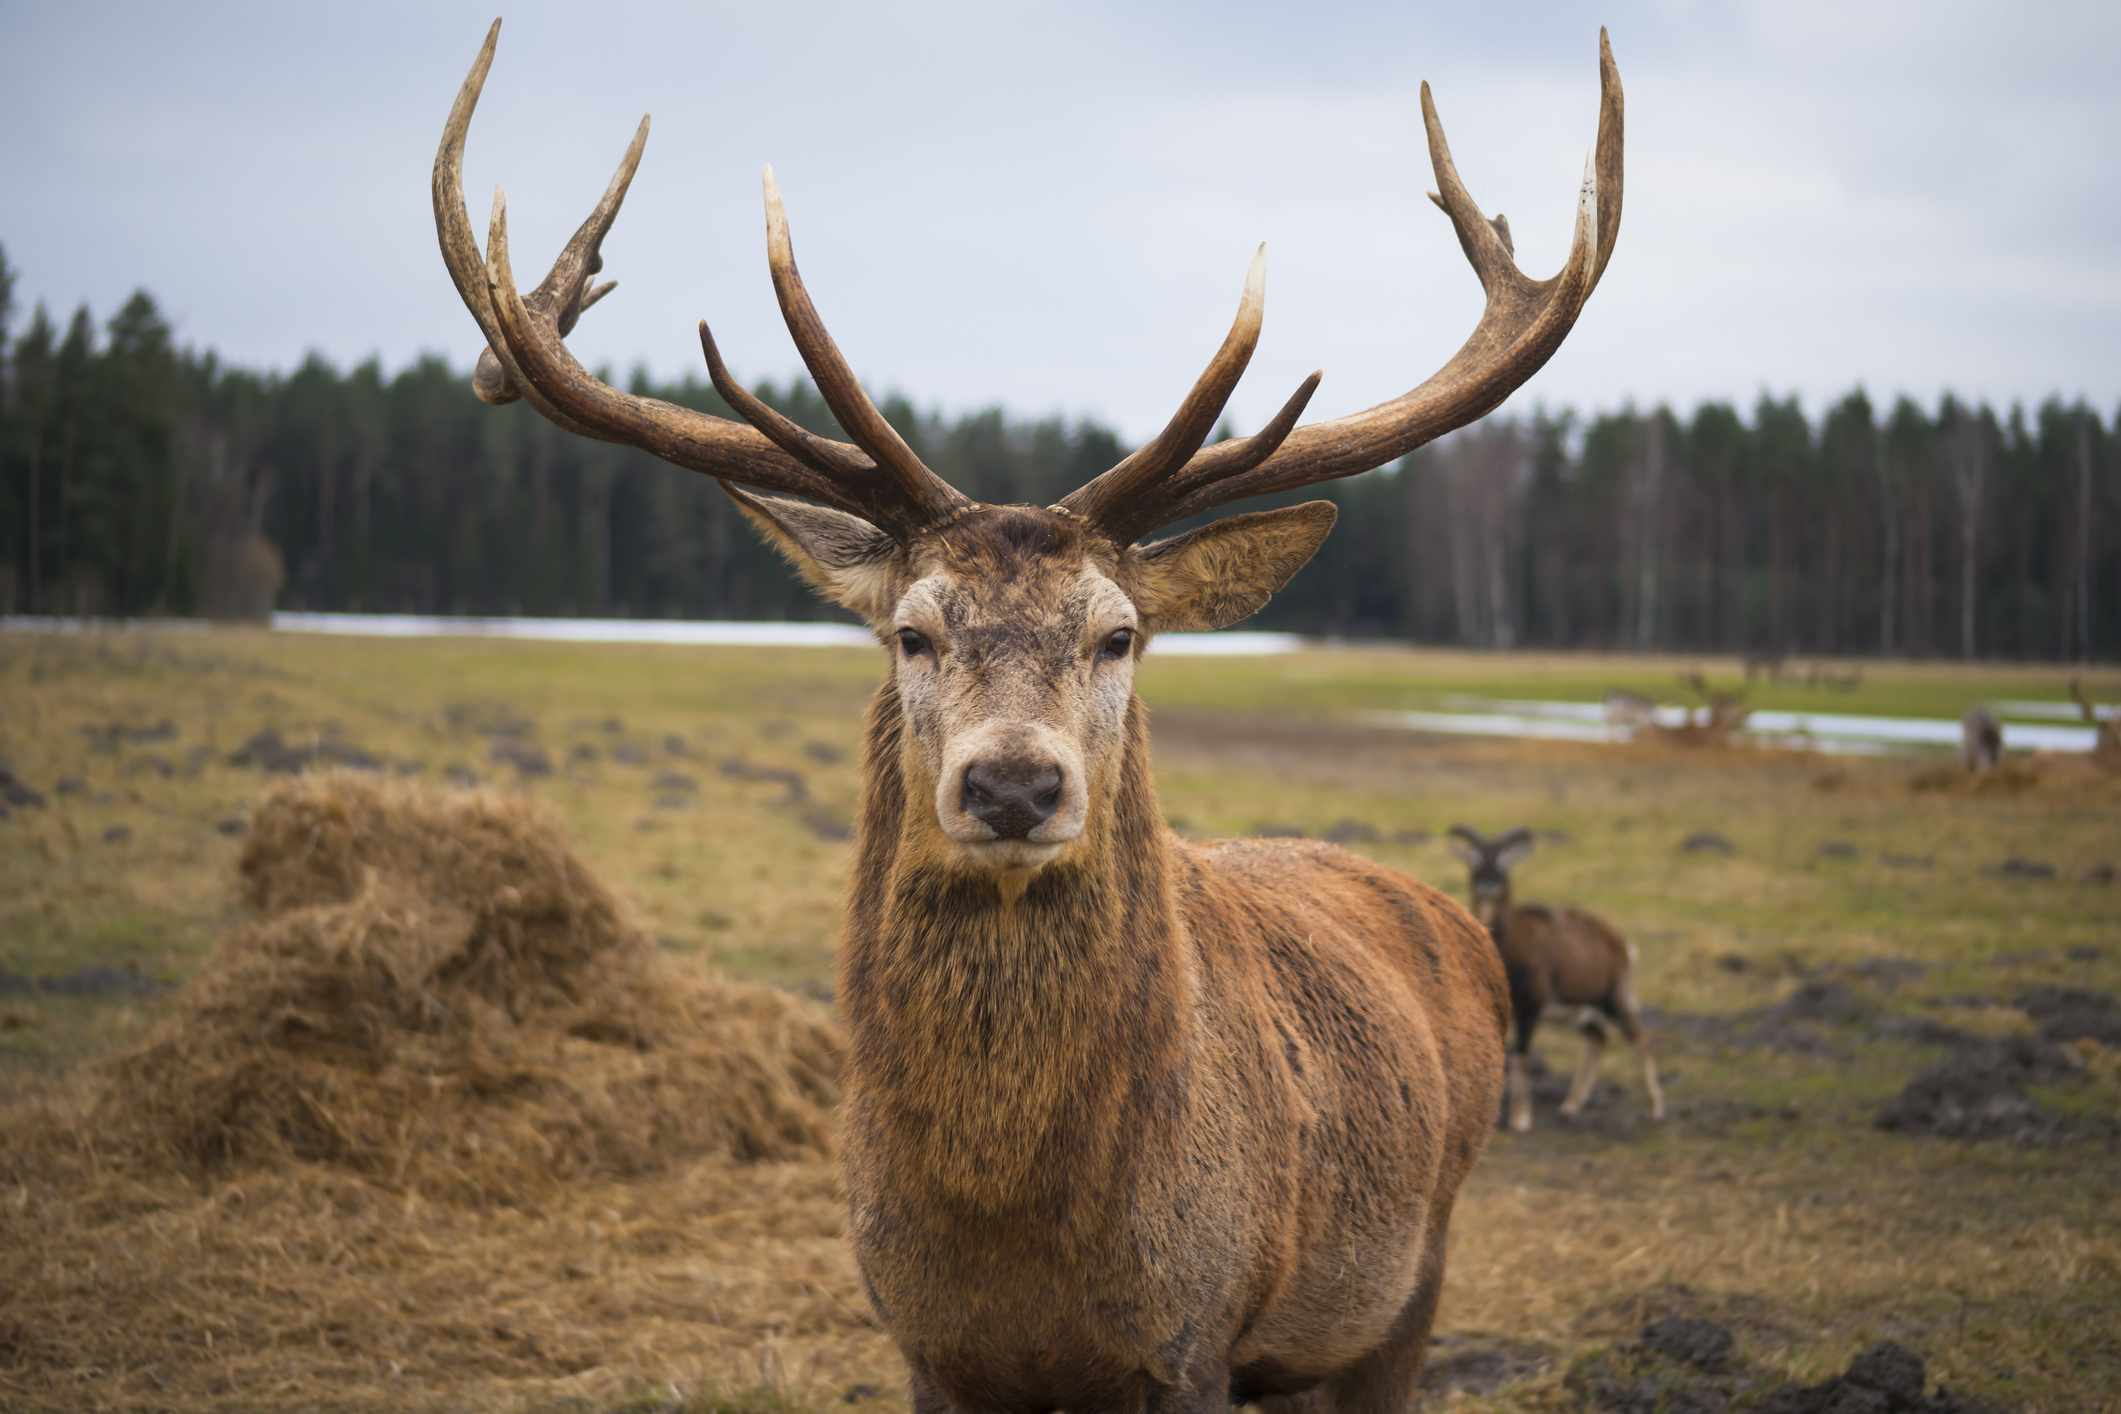 A red stag deer gazes into camera with two full antlers.